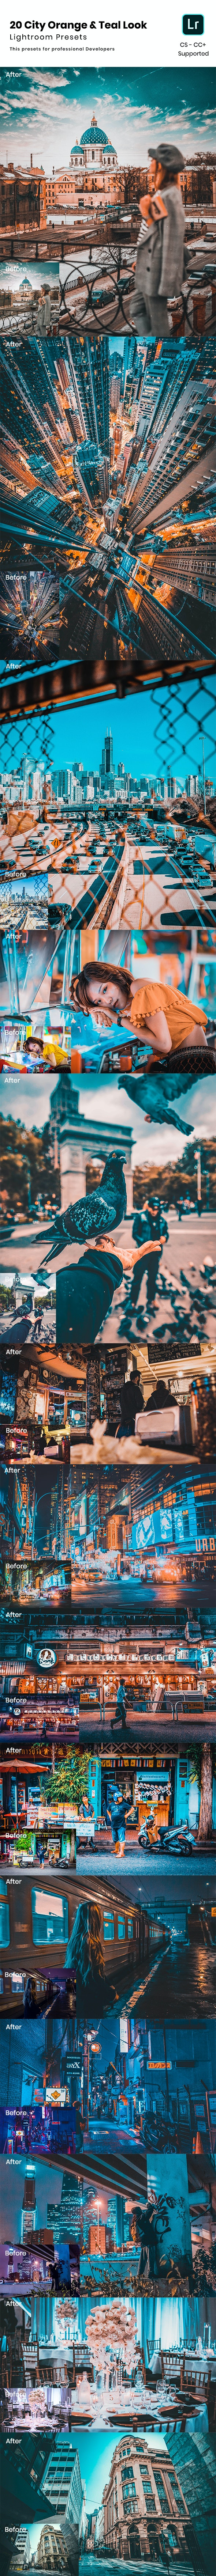 20 City Orange & Teal Look Lightroom Preset - Cinematic Lightroom Presets